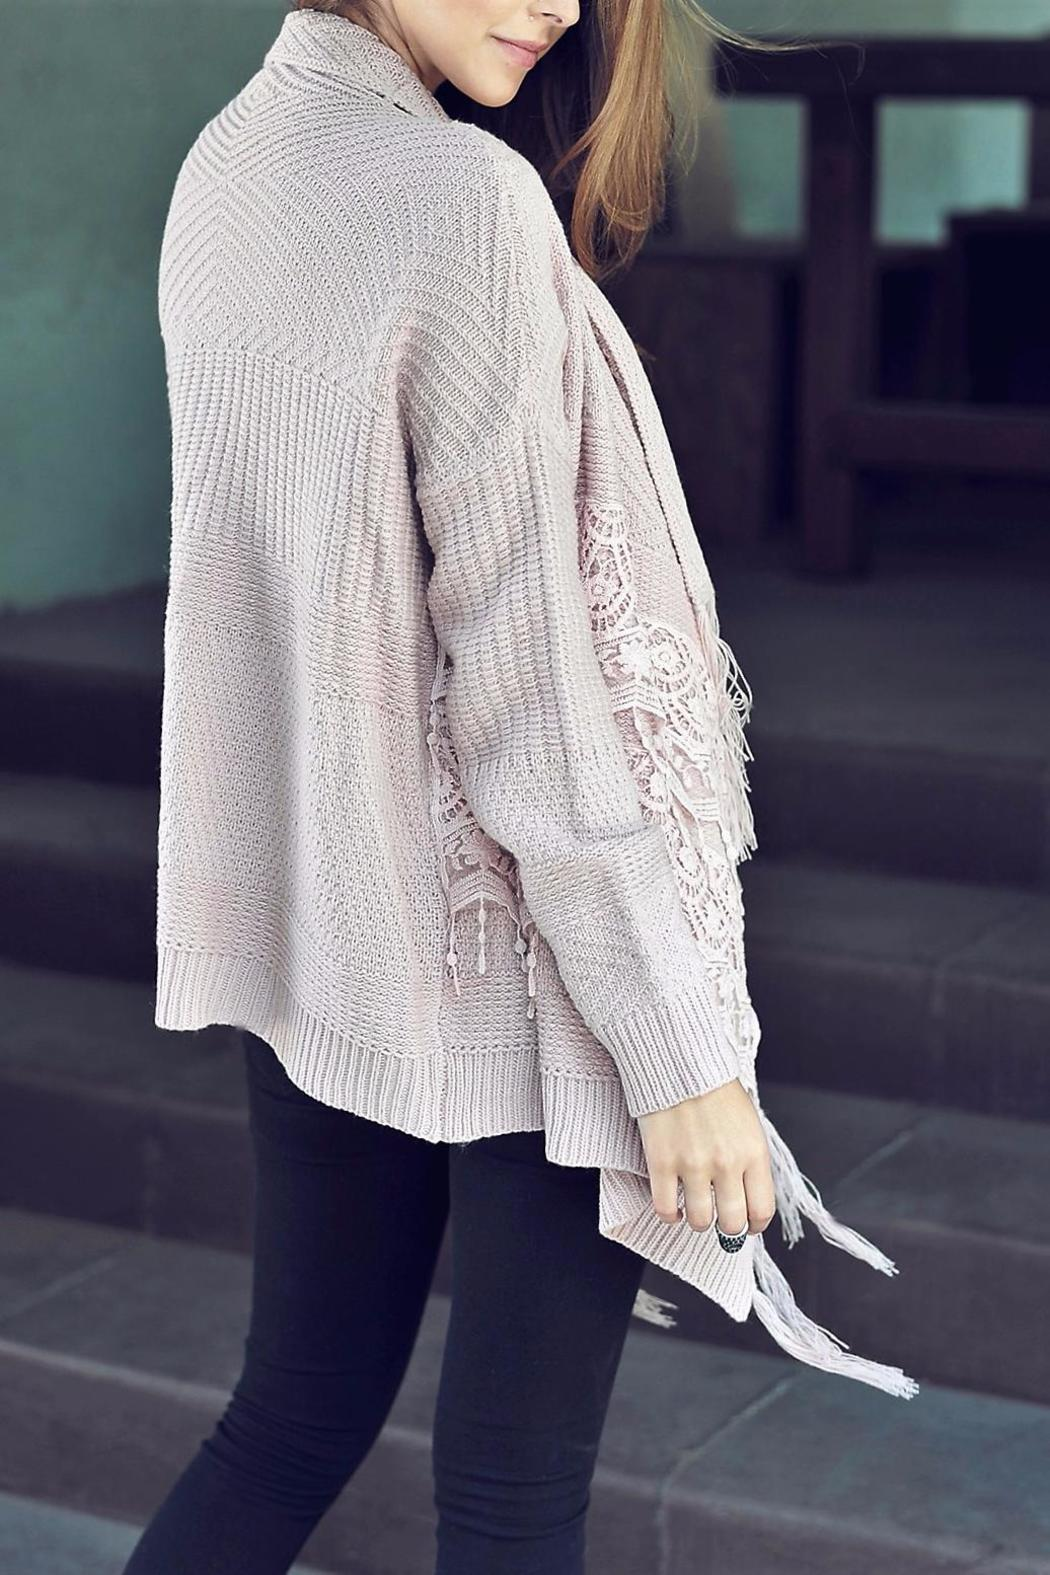 People Outfitter Lace Fringe Cardigan - Side Cropped Image